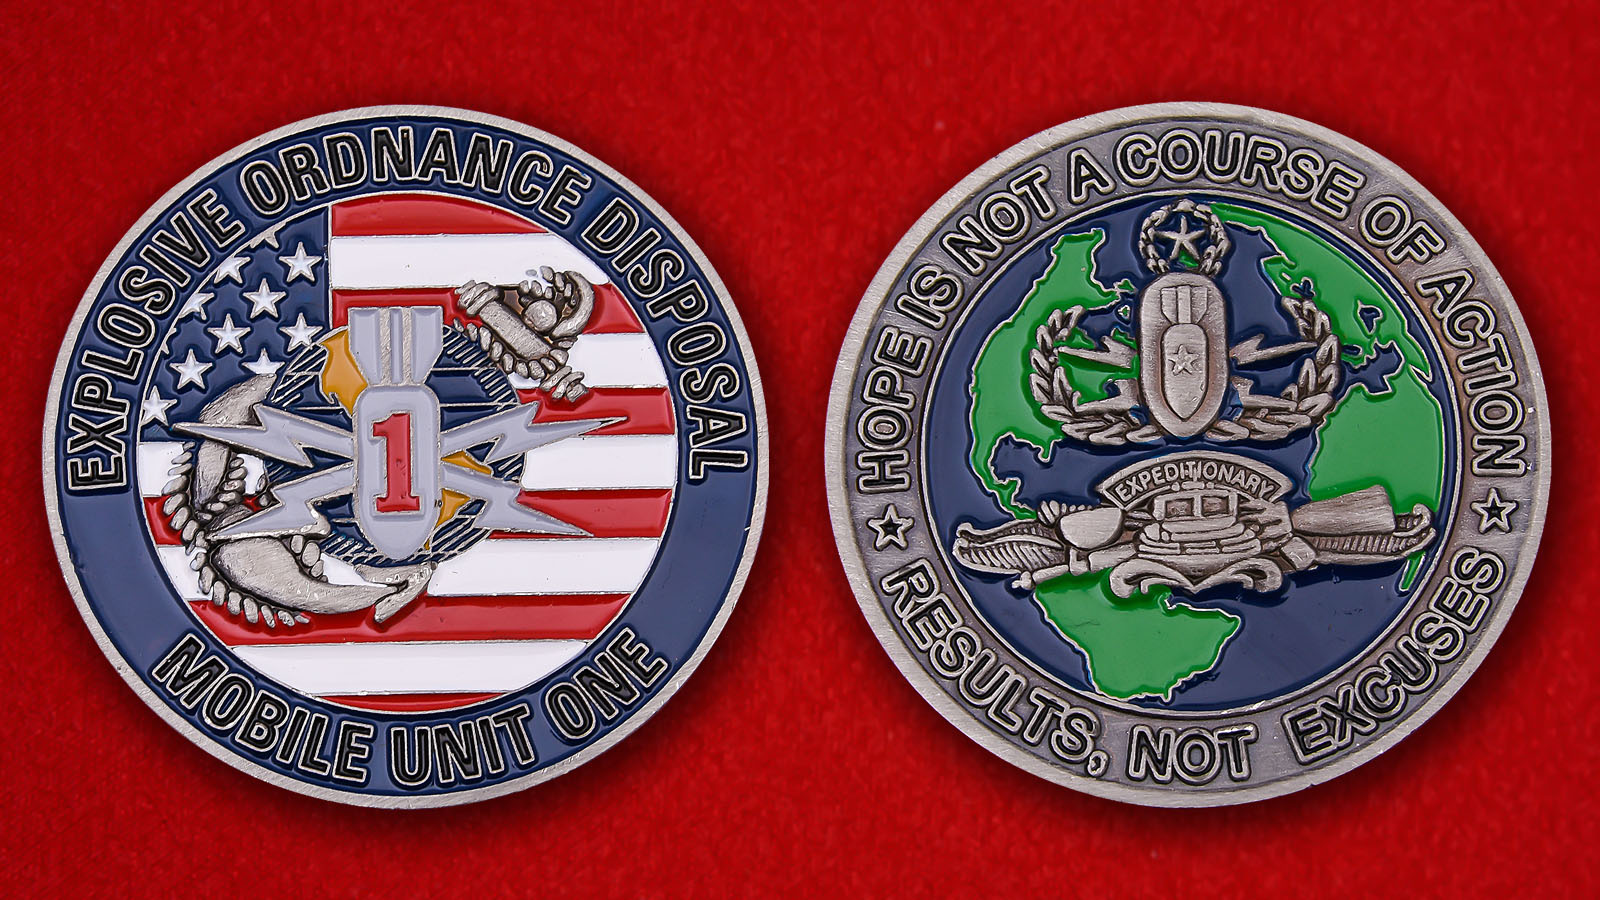 US Expeditionary Forces Explosive Ordnance Disposal Mobile Unit One Challenge Coin